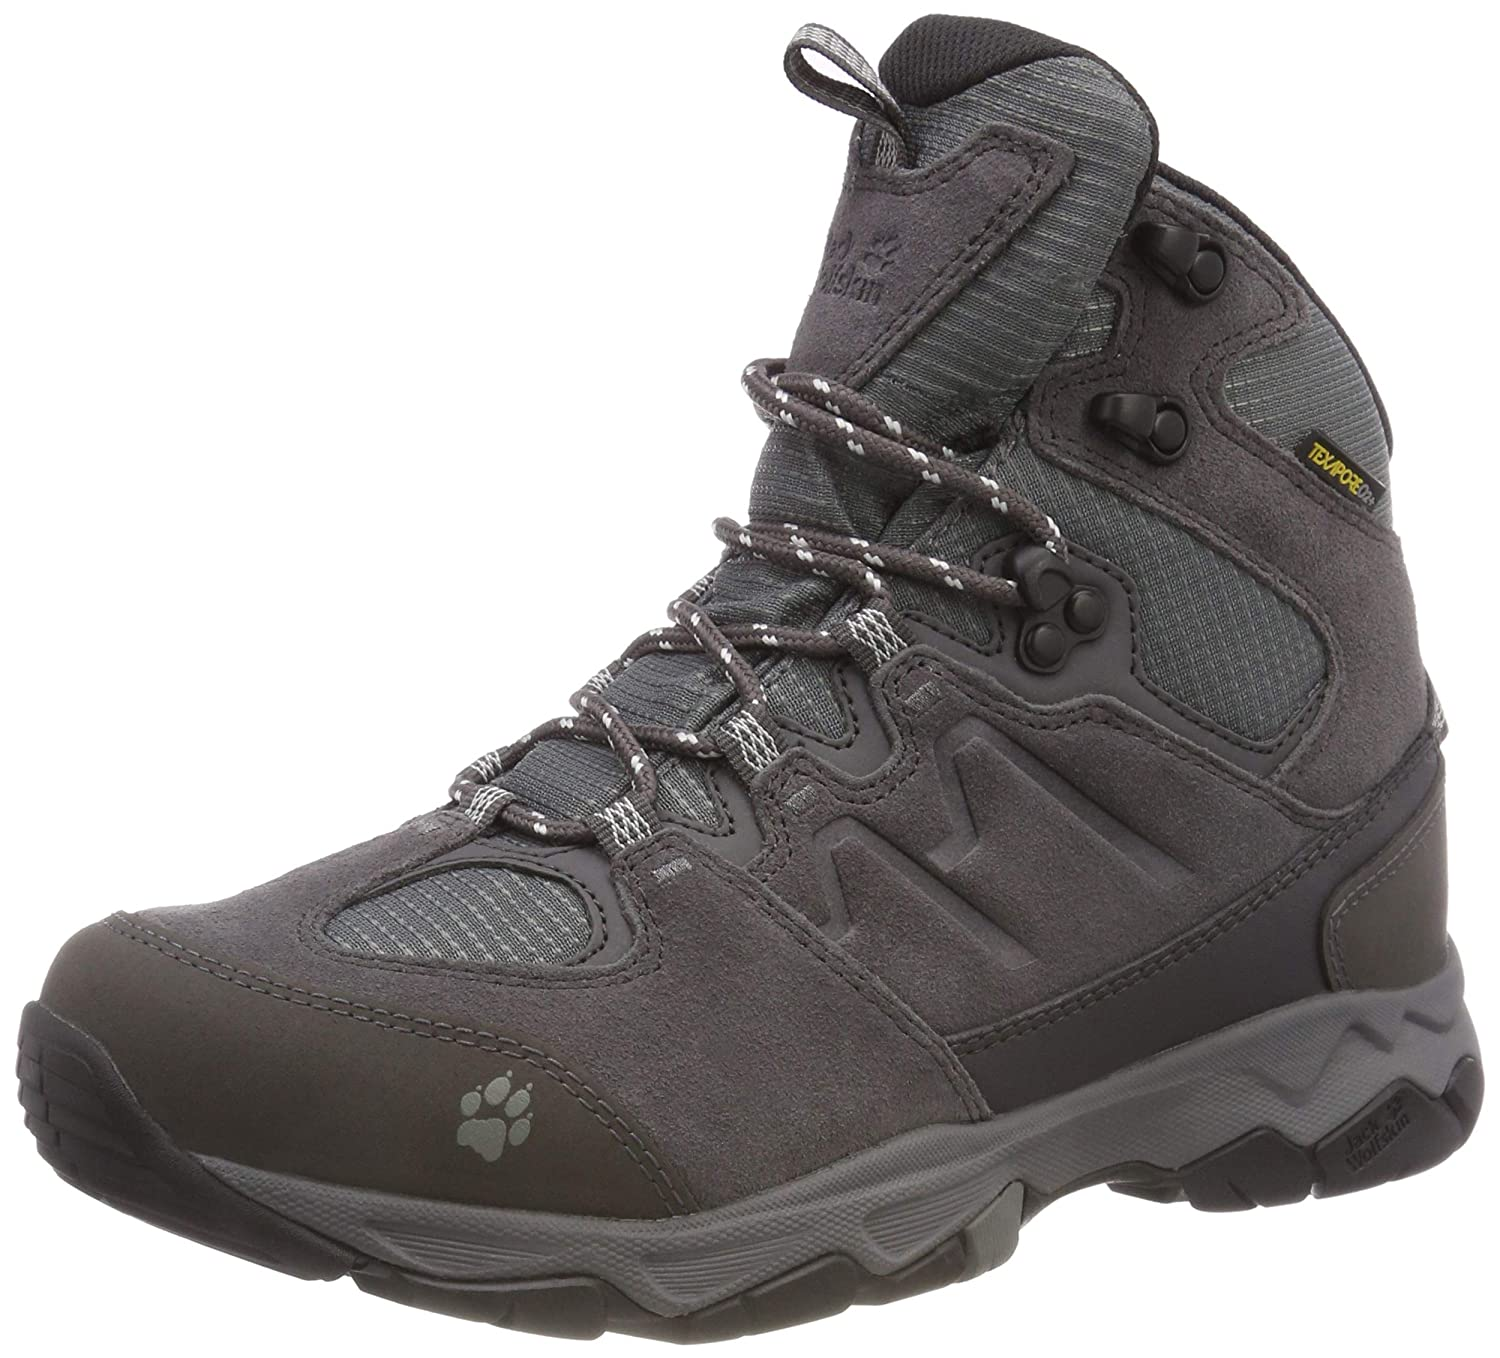 bbaa53f0327 Jack Wolfskin Women's MTN Attack 6 Texapore Mid W High Rise Hiking ...